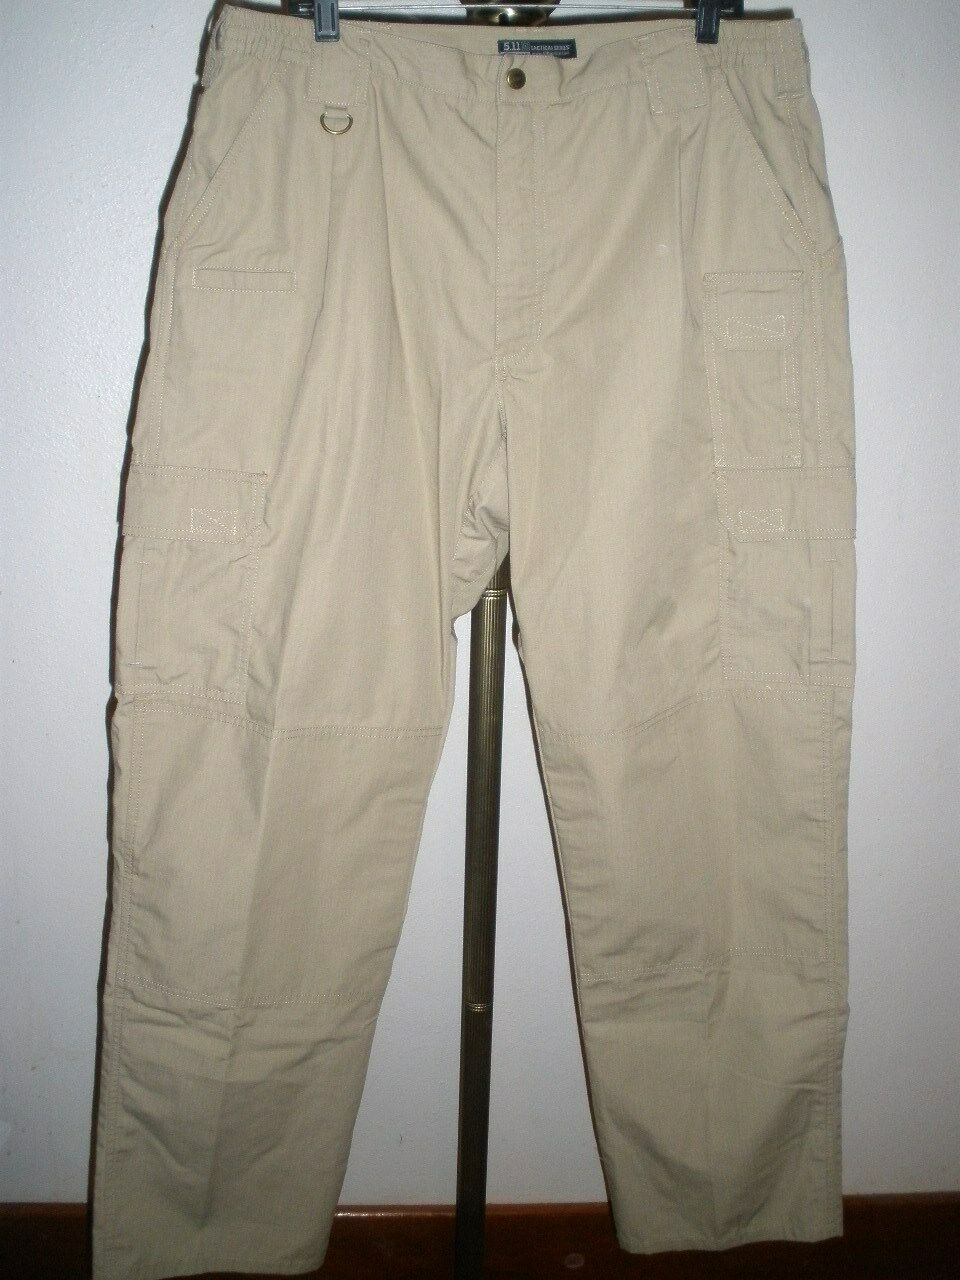 NWOT 5.11 Tactical Series  Taclite Pro Pants Poly Ctn Ripstop Sz 38 x 34  is discounted